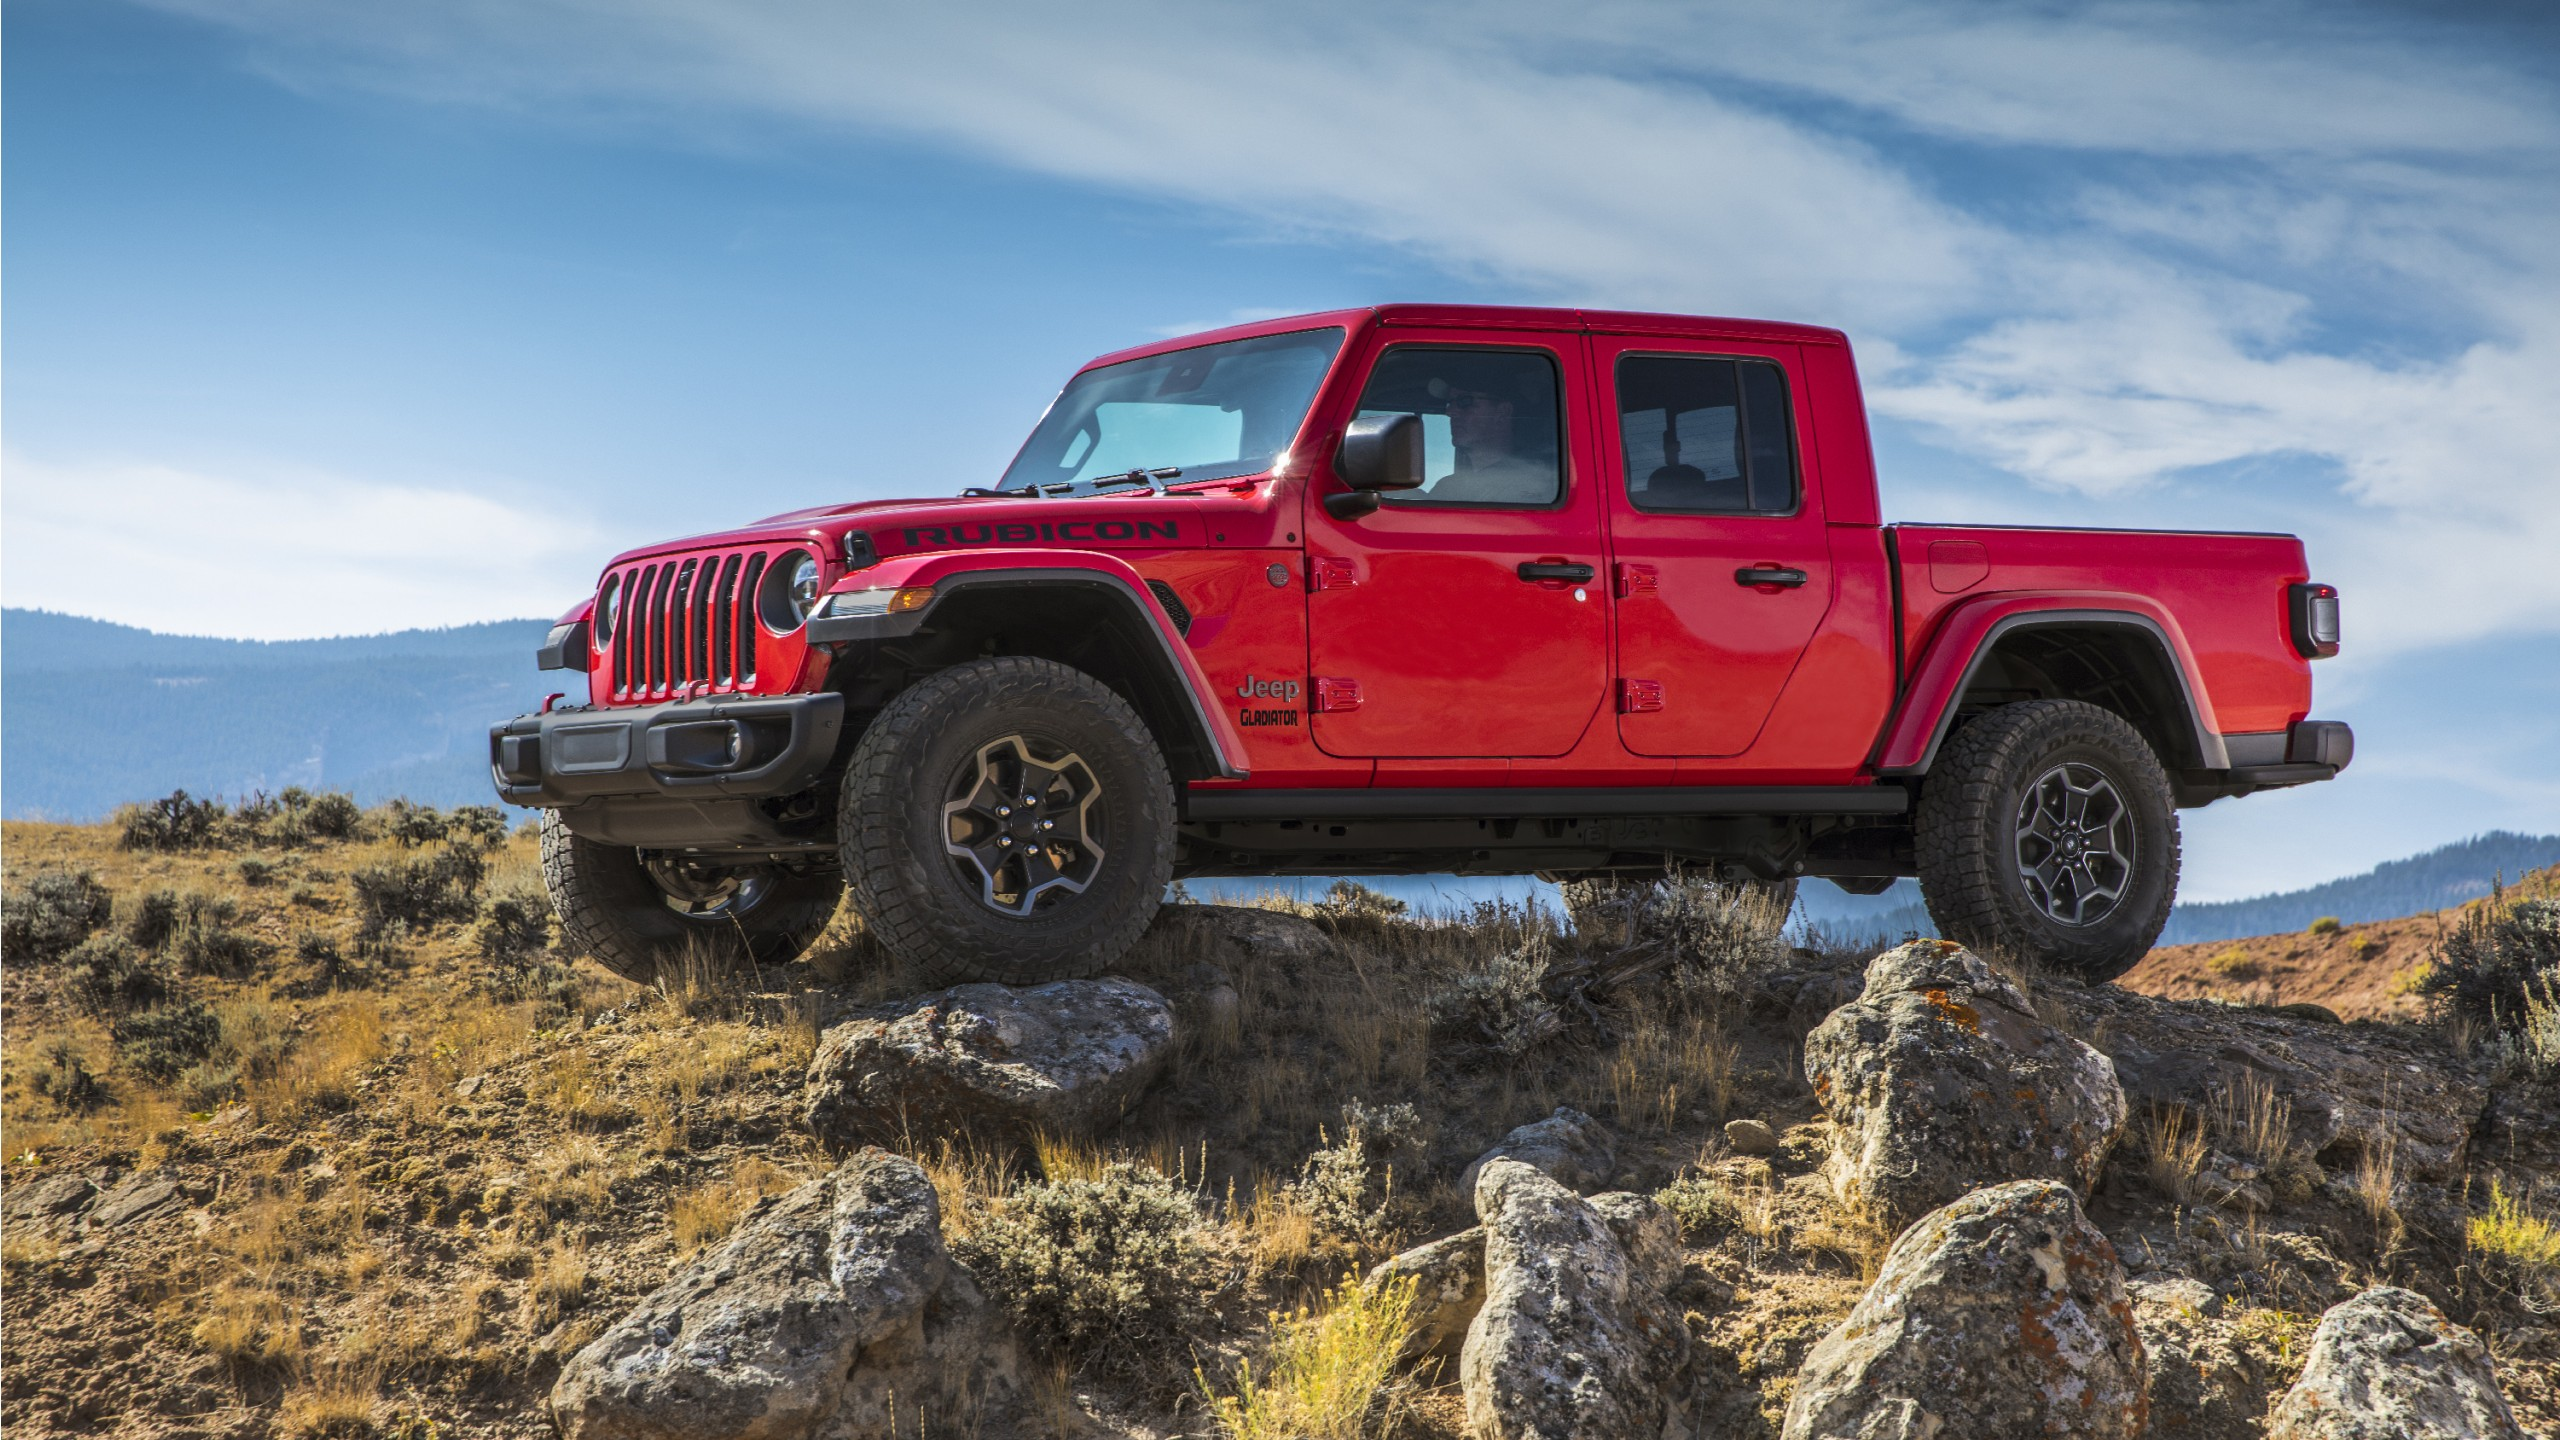 2020 Jeep Gladiator Rubicon Wallpaper HD Car Wallpapers ID 11593 2560x1440